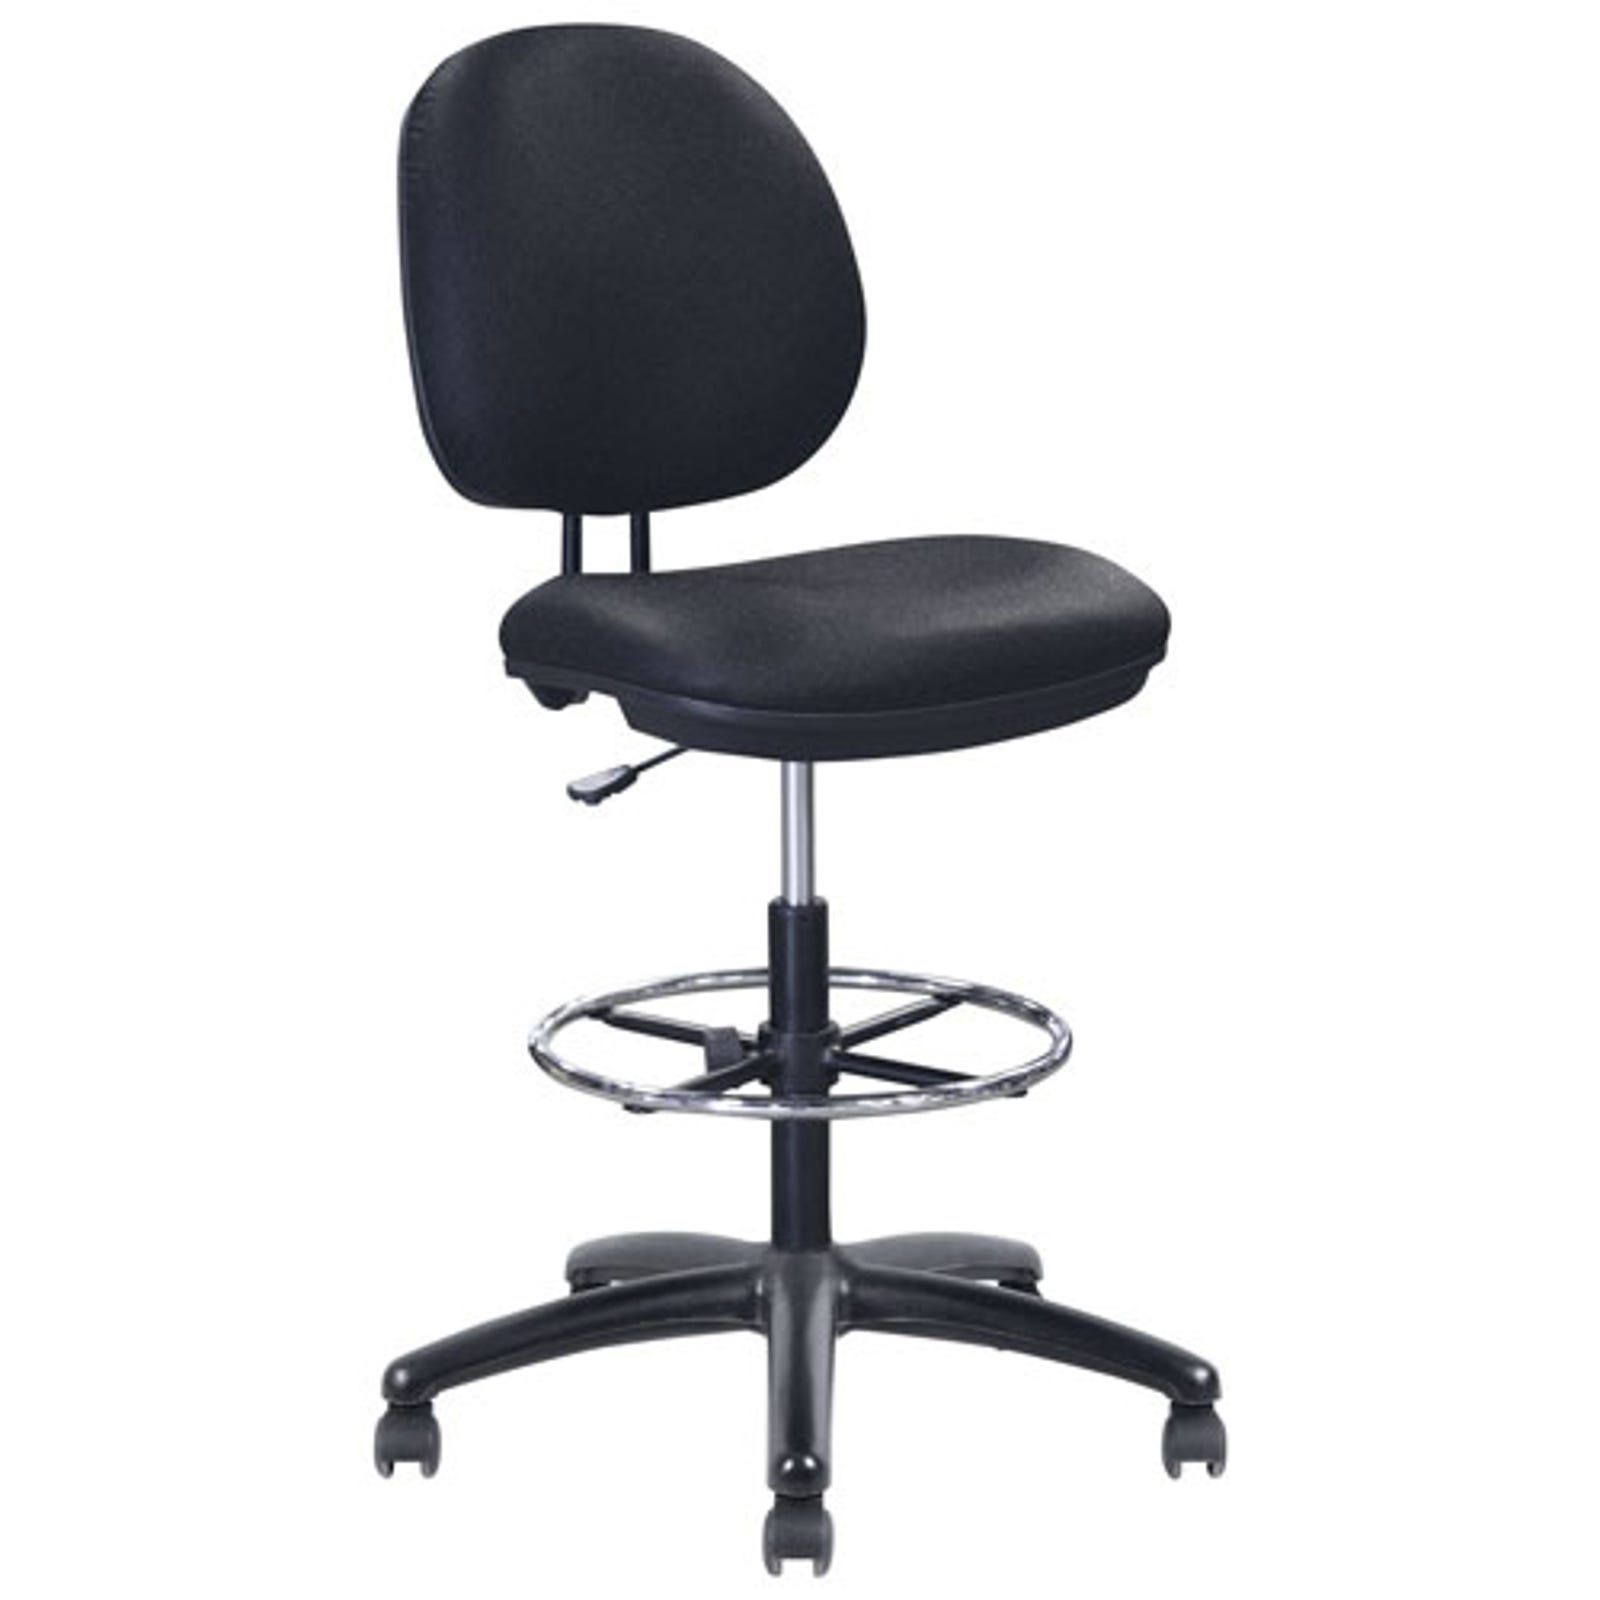 Enjoyable Office Chairs Ergonomic Computer Desk More Best Buy Gmtry Best Dining Table And Chair Ideas Images Gmtryco